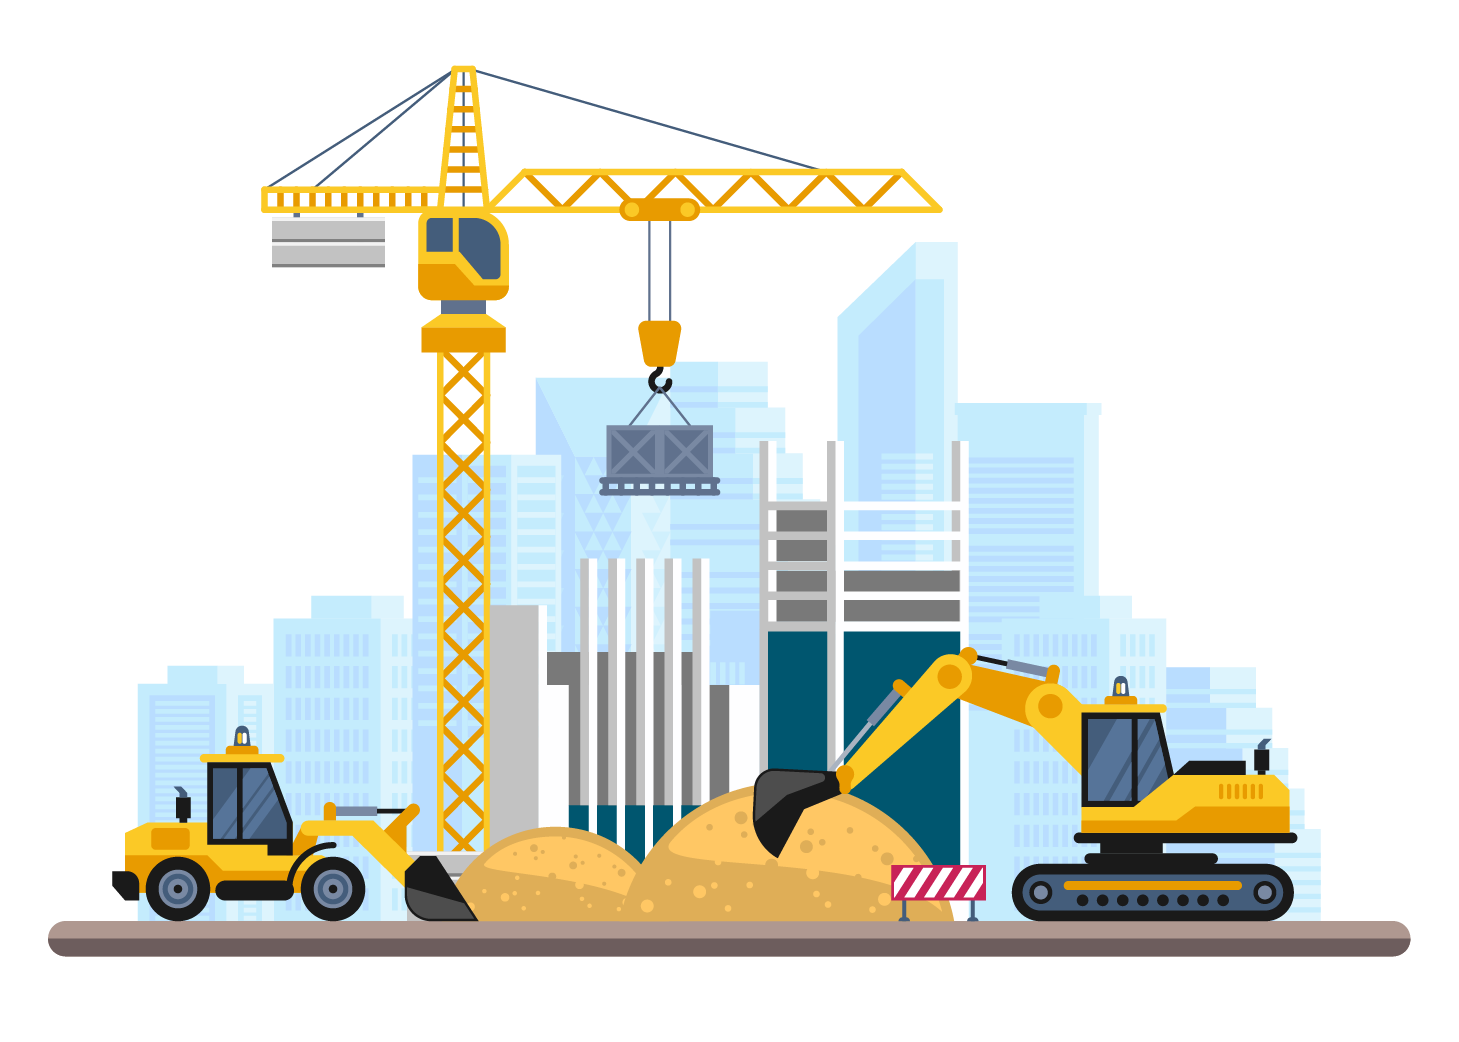 Illustration of construction site in city